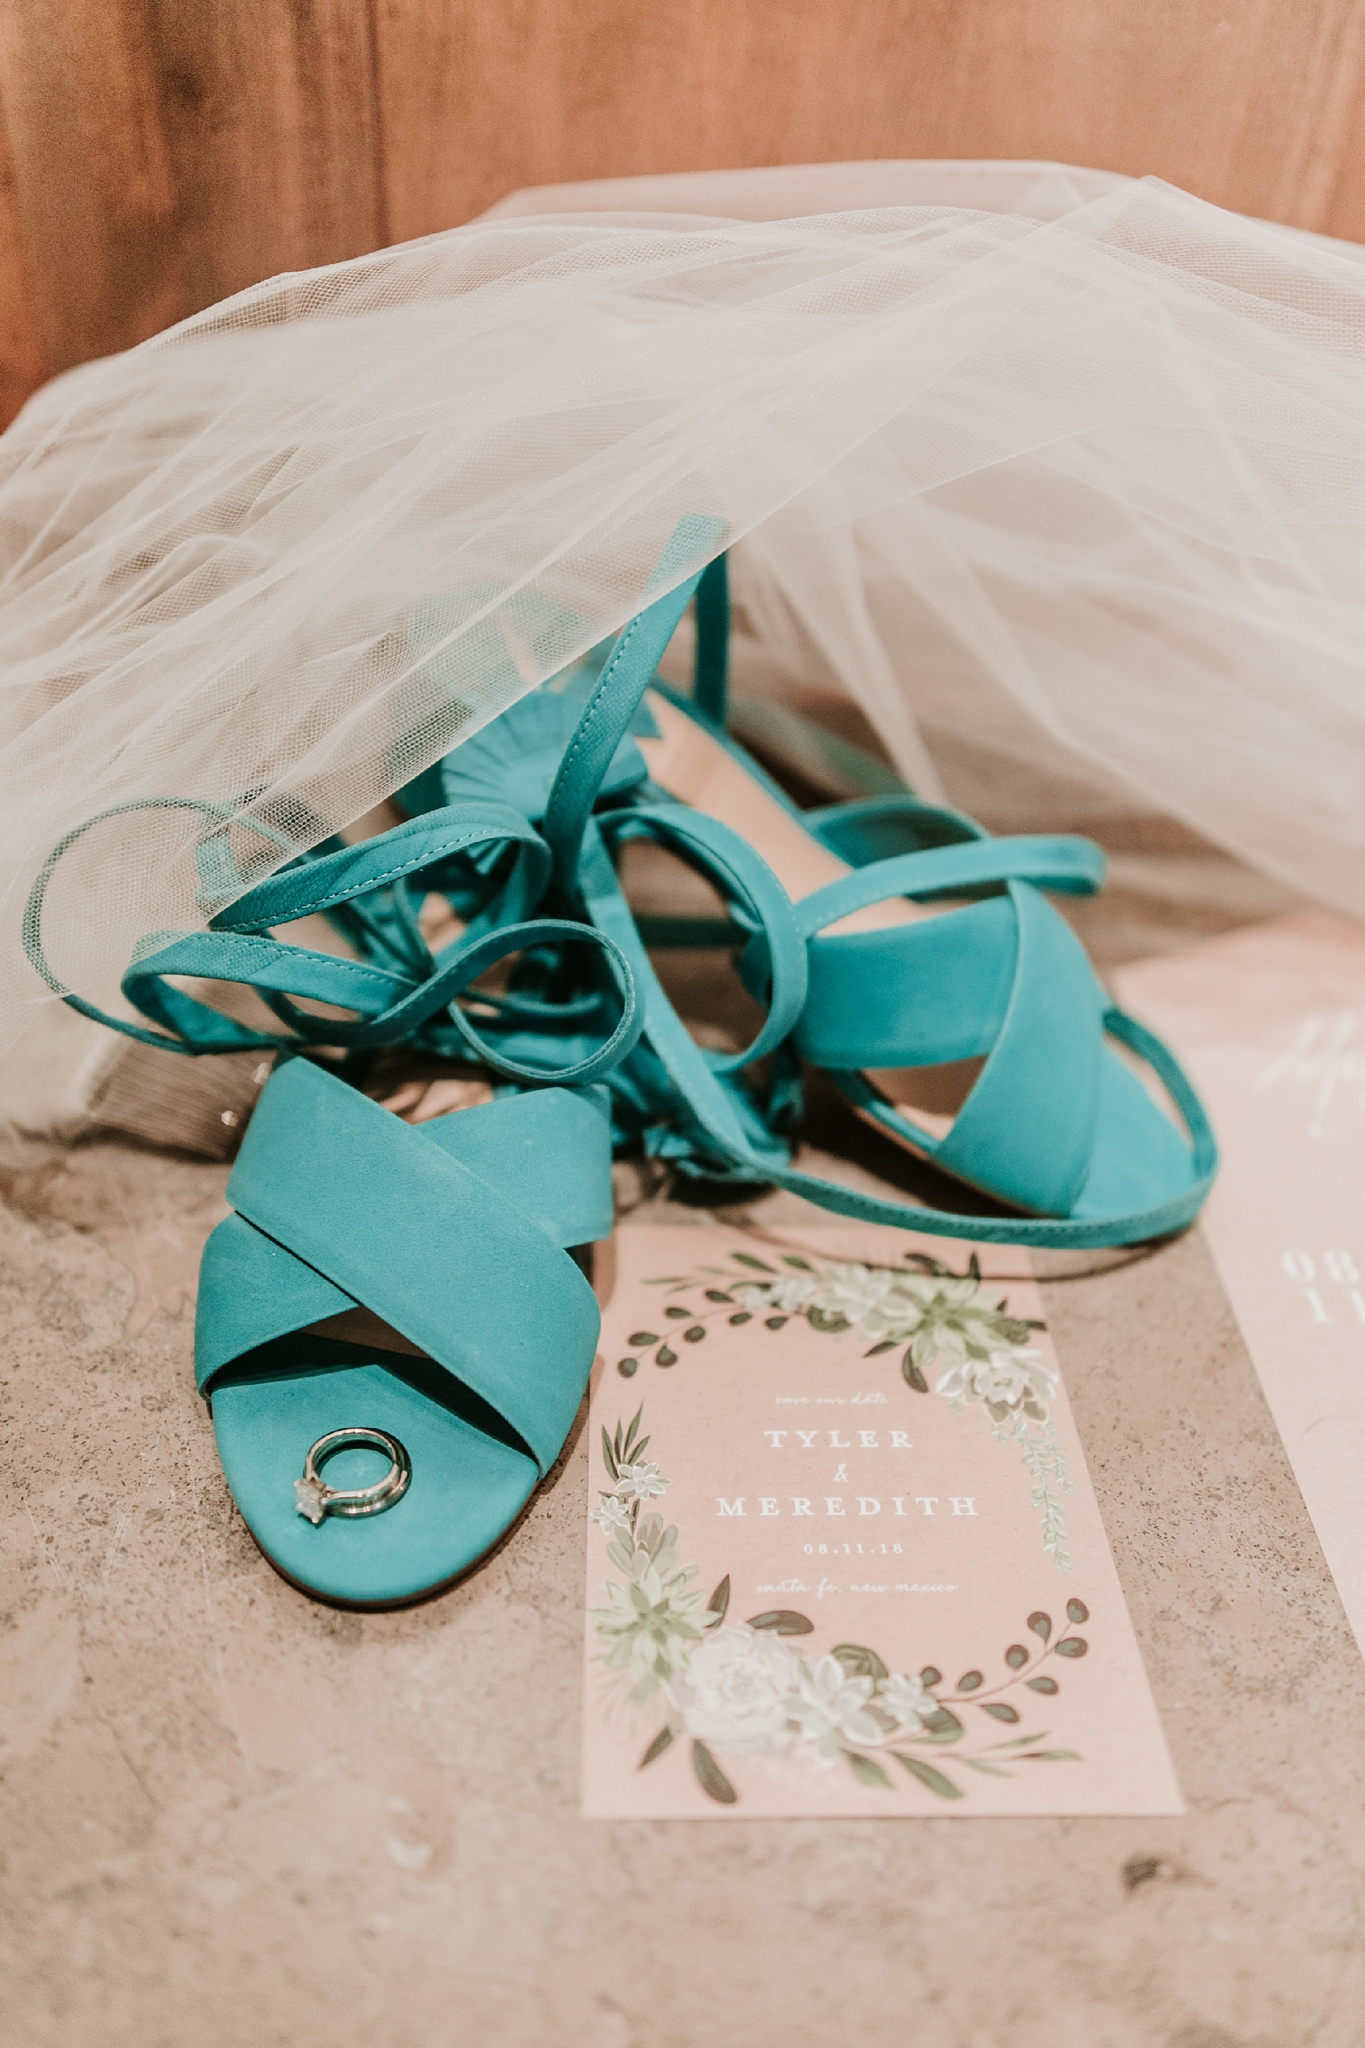 Alicia+lucia+photography+-+albuquerque+wedding+photographer+-+santa+fe+wedding+photography+-+new+mexico+wedding+photographer+-+new+mexico+wedding+-+new+mexico+wedding+-+colorado+wedding+-+bridal+shoes+-+bridal+inspo_0023.jpg